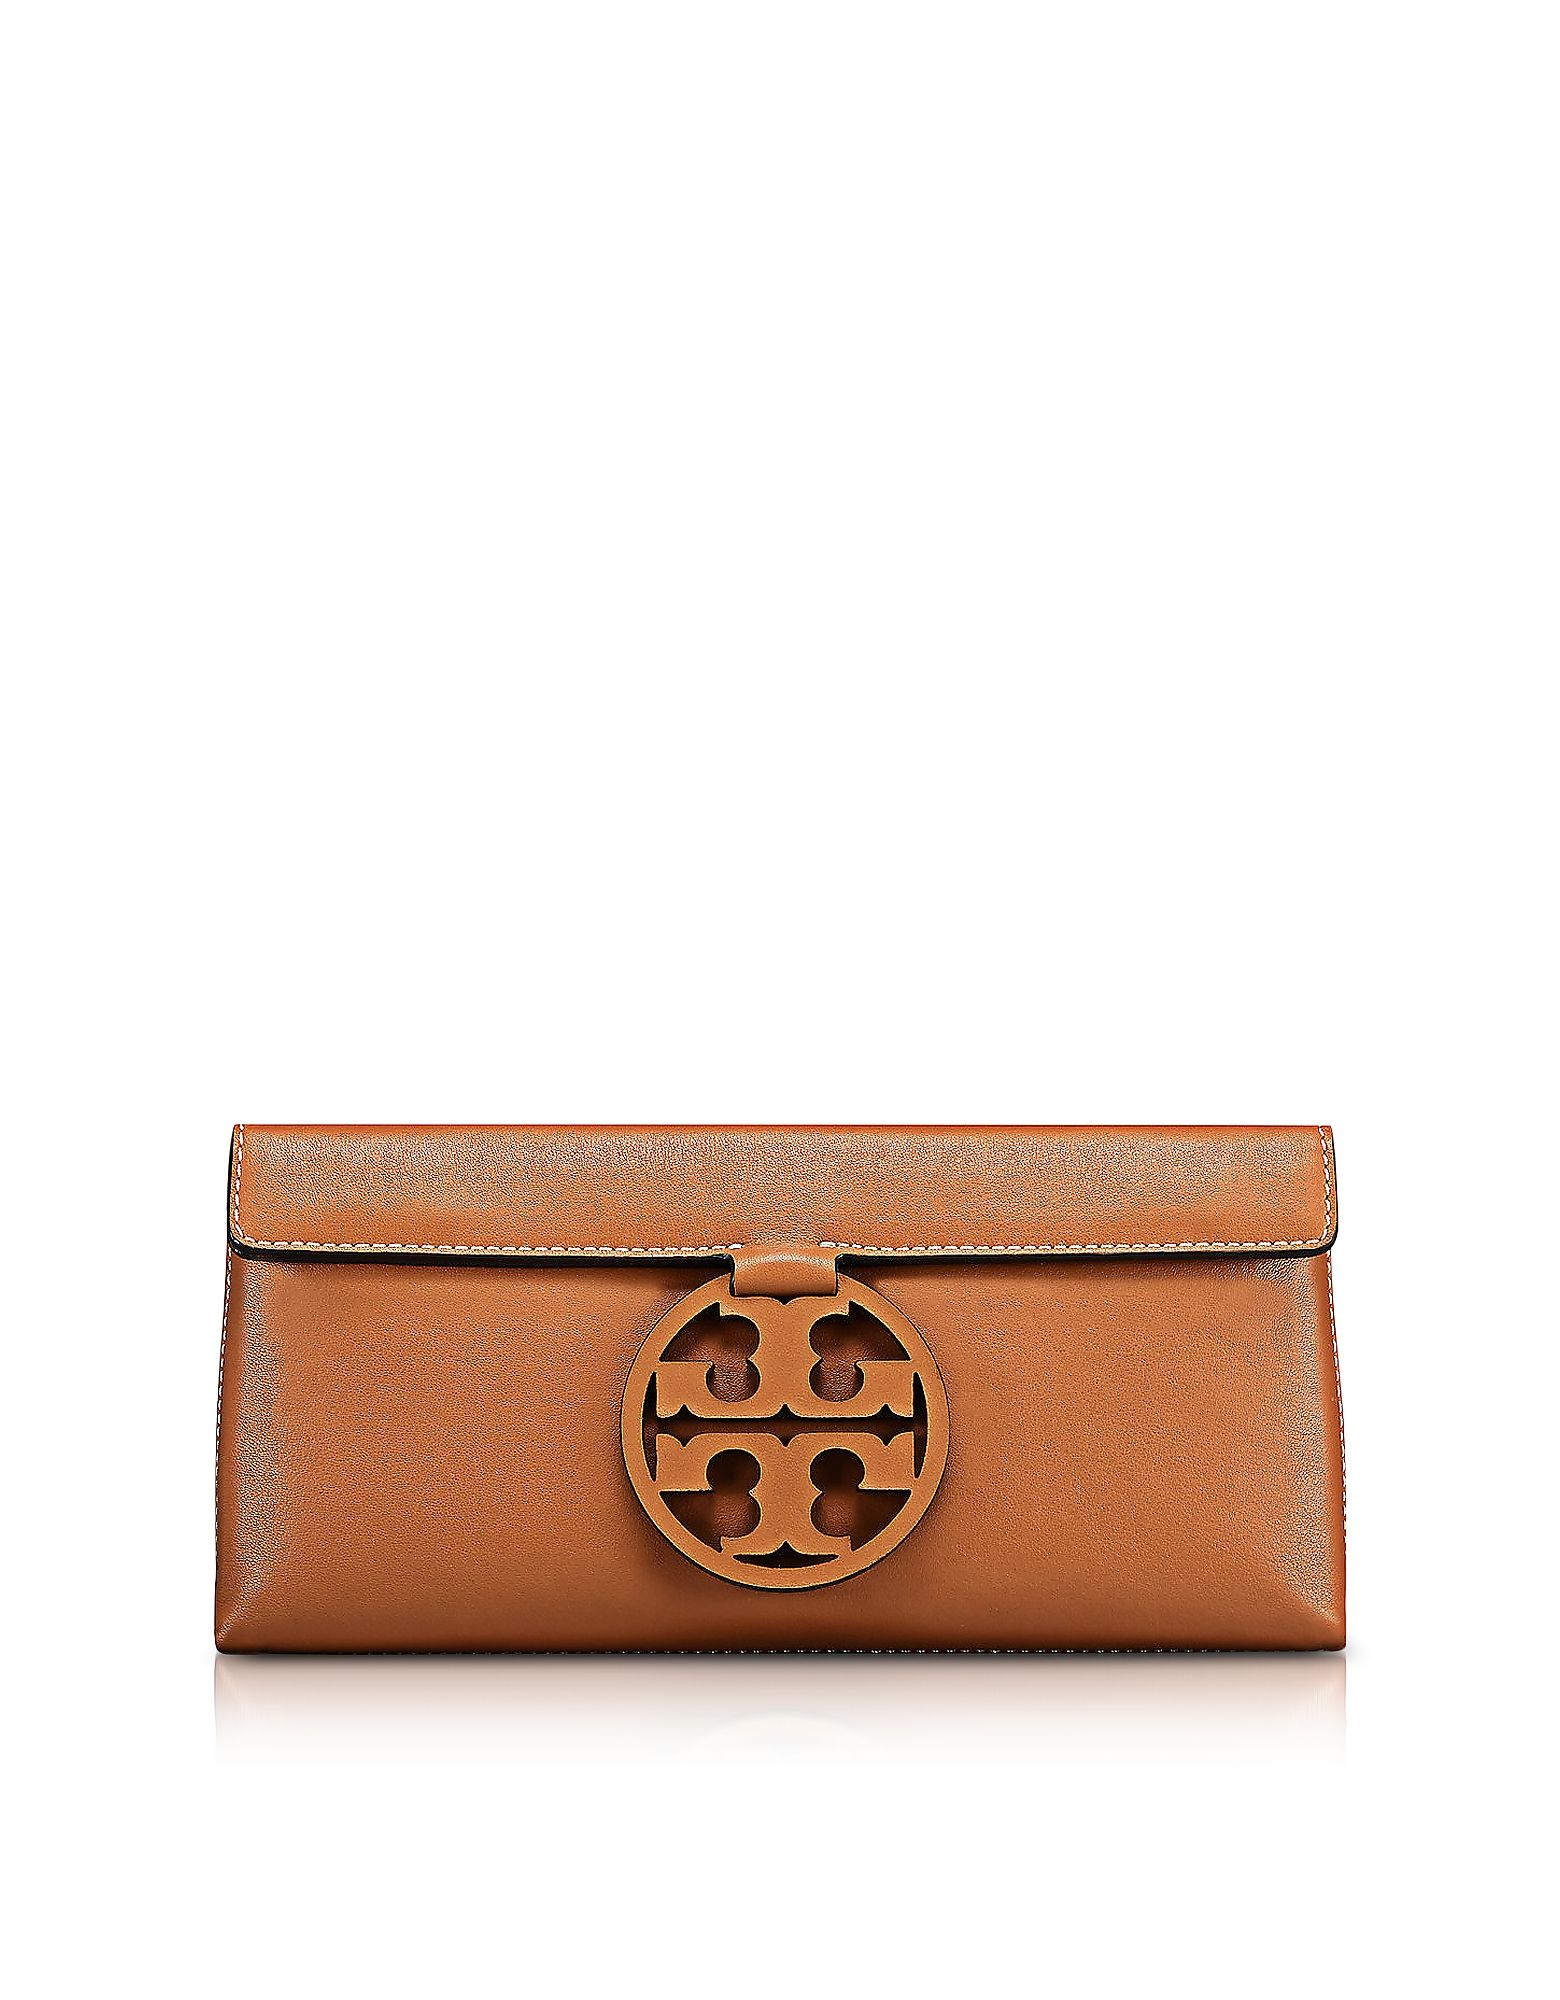 b4840d4315d7 TORY BURCH MILLER NEW CUOIO LEATHER CLUTCH.  toryburch  bags  leather   clutch  hand bags